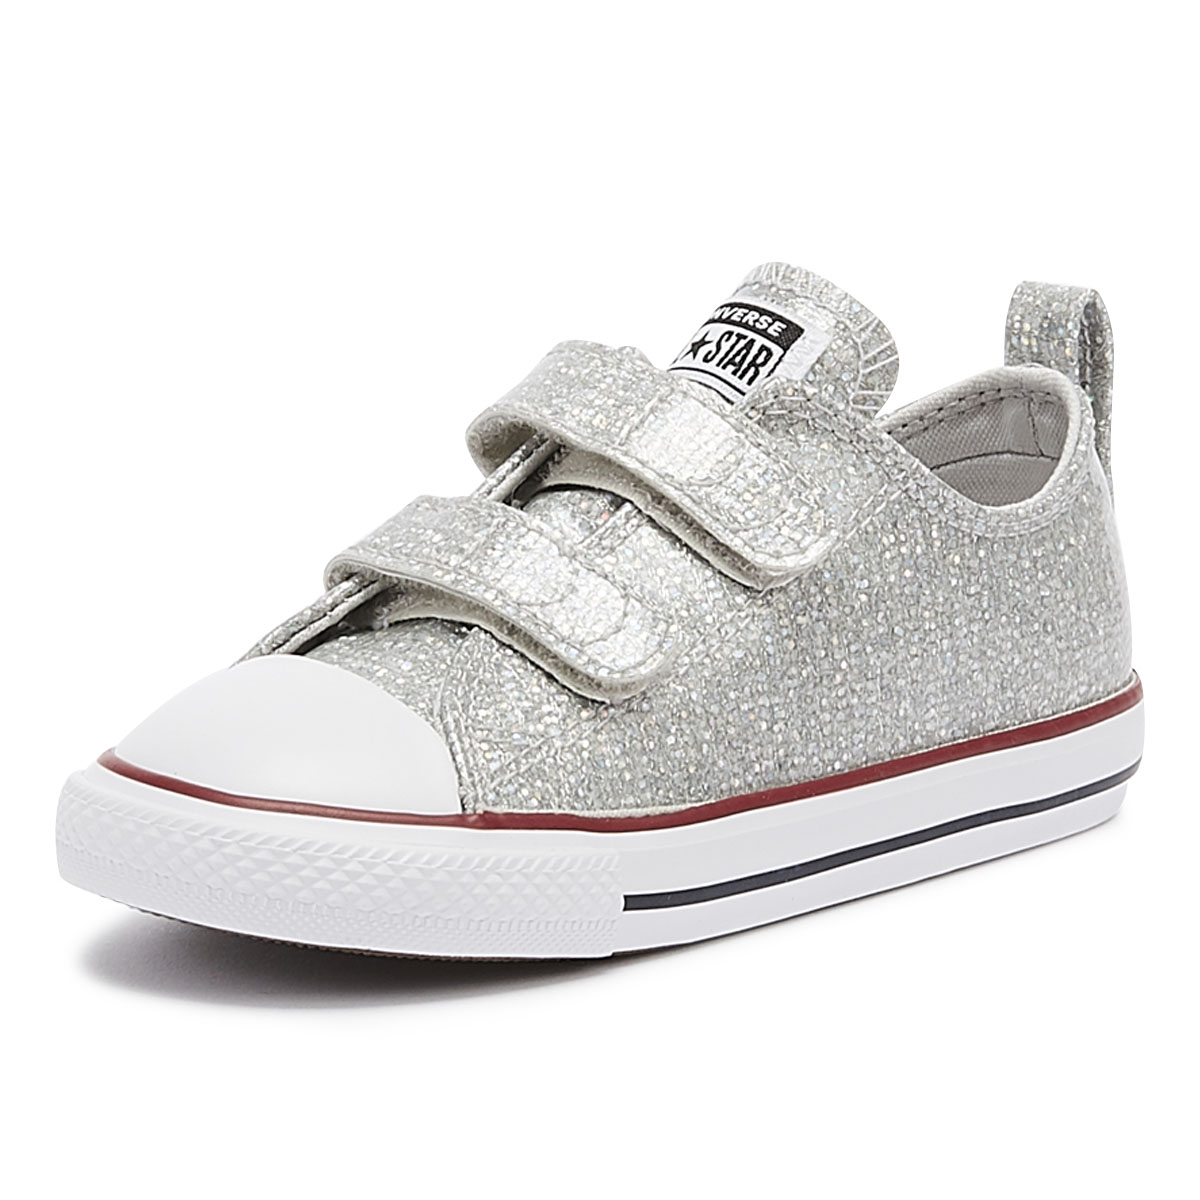 d7dee1c84c32 Details about Converse Chuck Taylor All Star 2V Toddlers Mouse Grey Ox  Trainers Kids Shoes